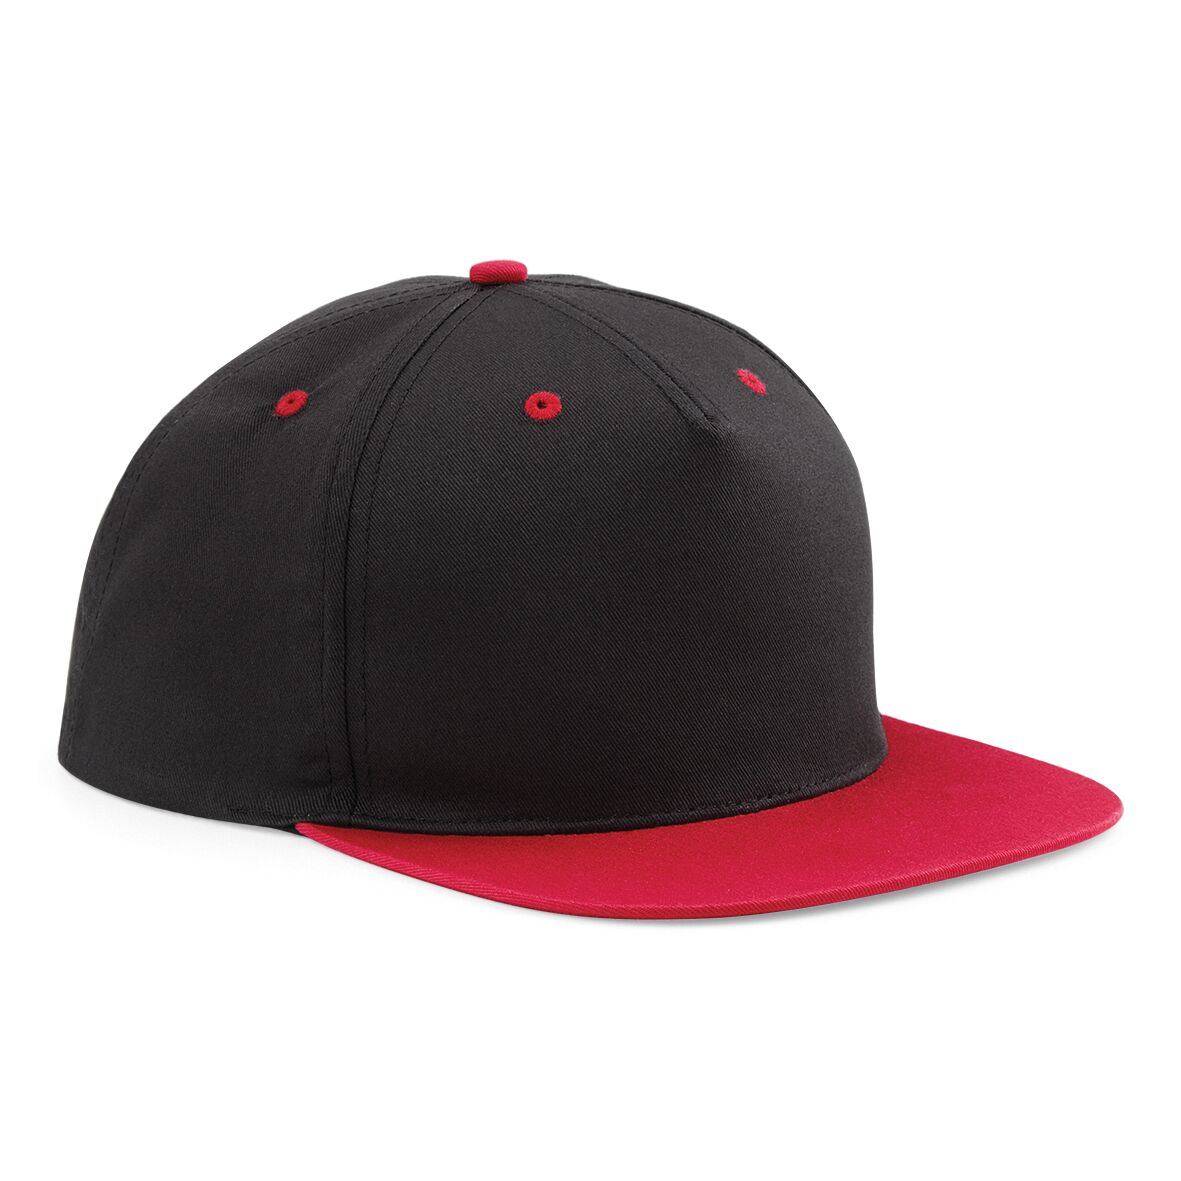 cap red front.jpeg